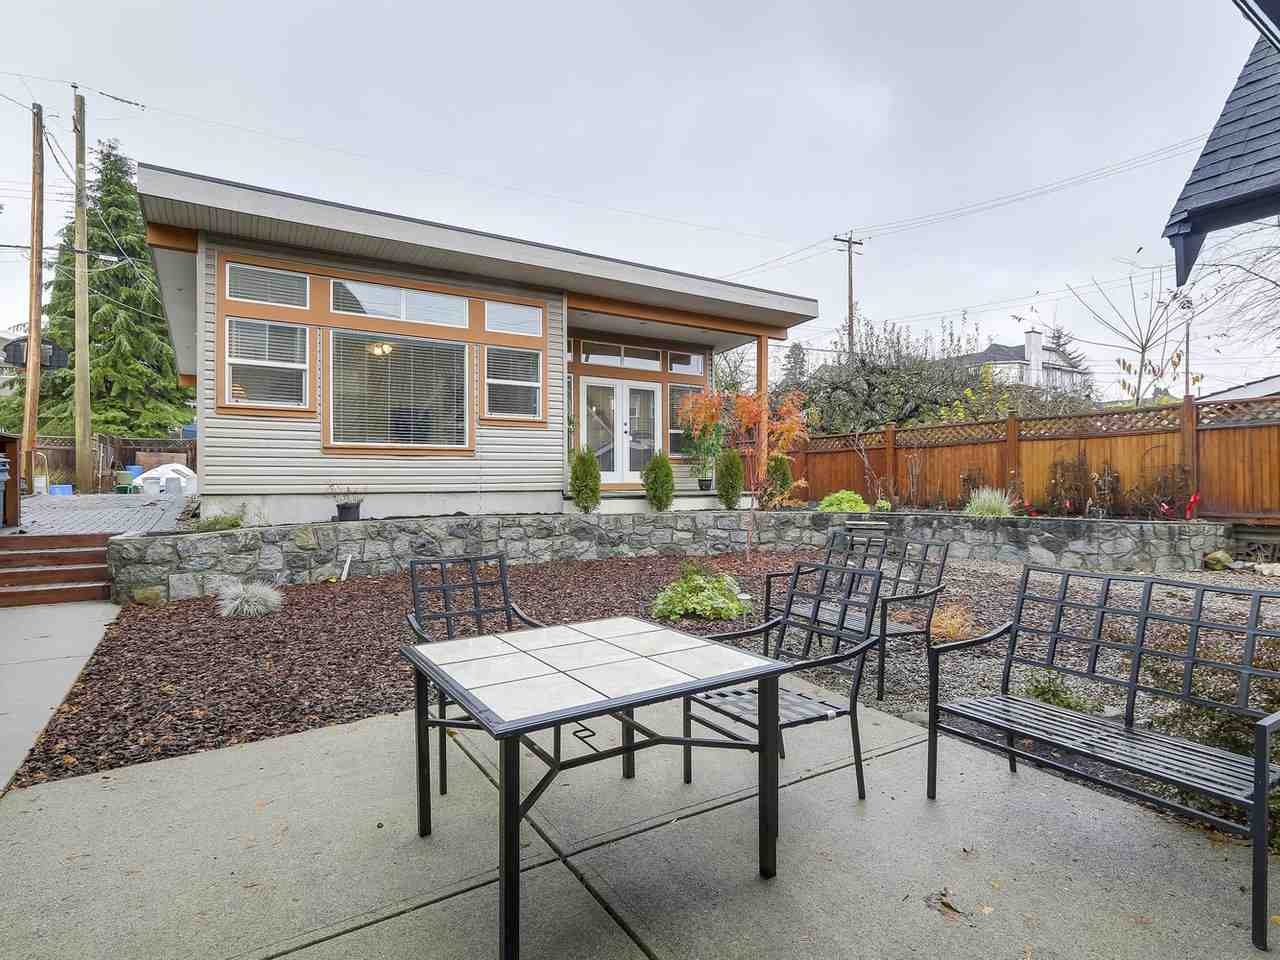 Photo 13: Photos: 658 E 4TH STREET in North Vancouver: Queensbury House for sale : MLS® # R2222993